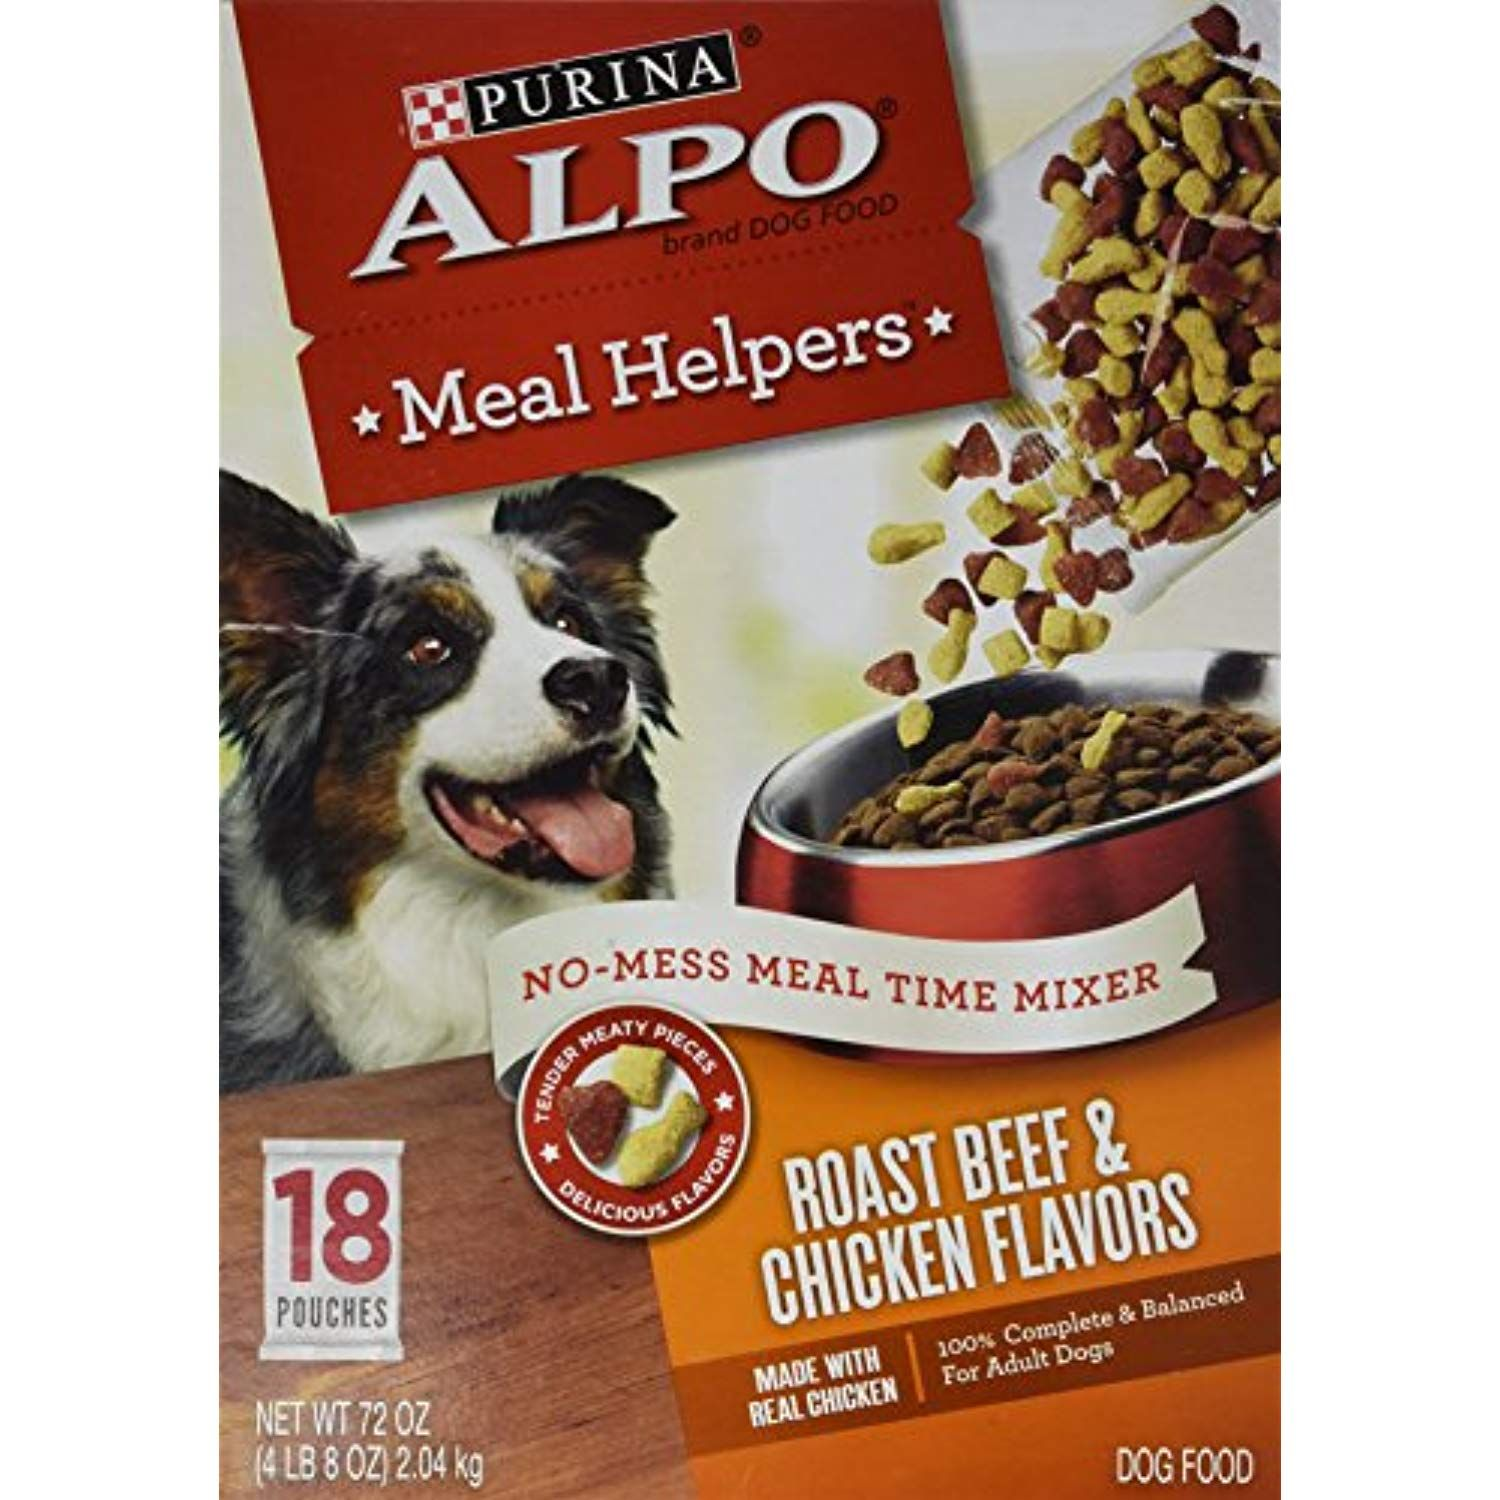 Purina Alpo Meal Helpers Roast Beef And Chicken Flavors Dog Food